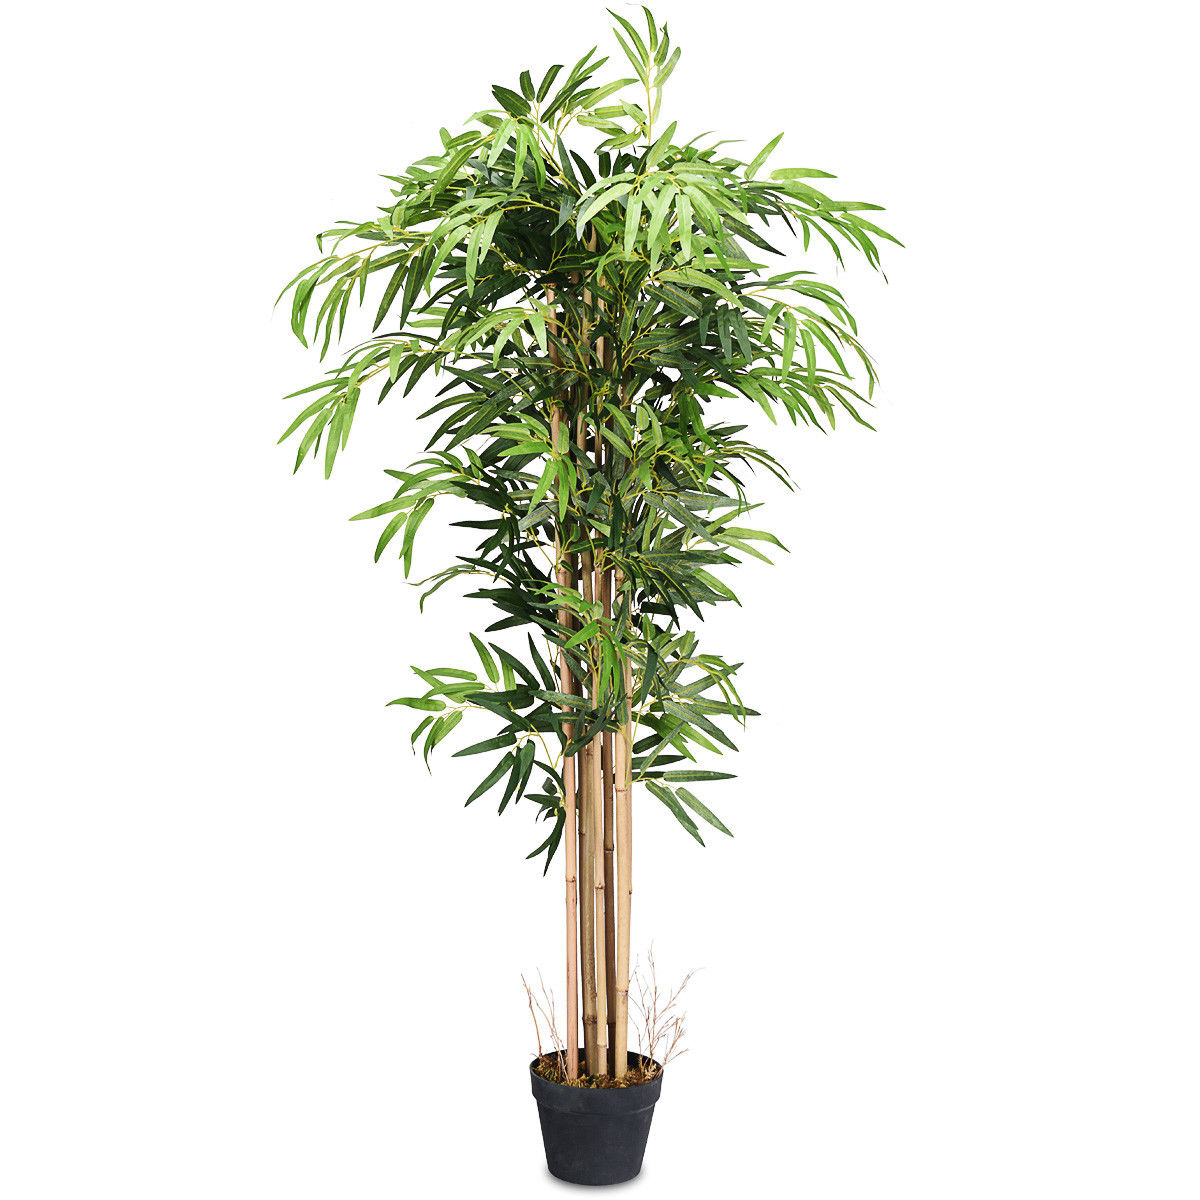 Costway 3.5'  4'  5'  5.5'  6' Artificial Tree Indoor-Outdoor Home Decor